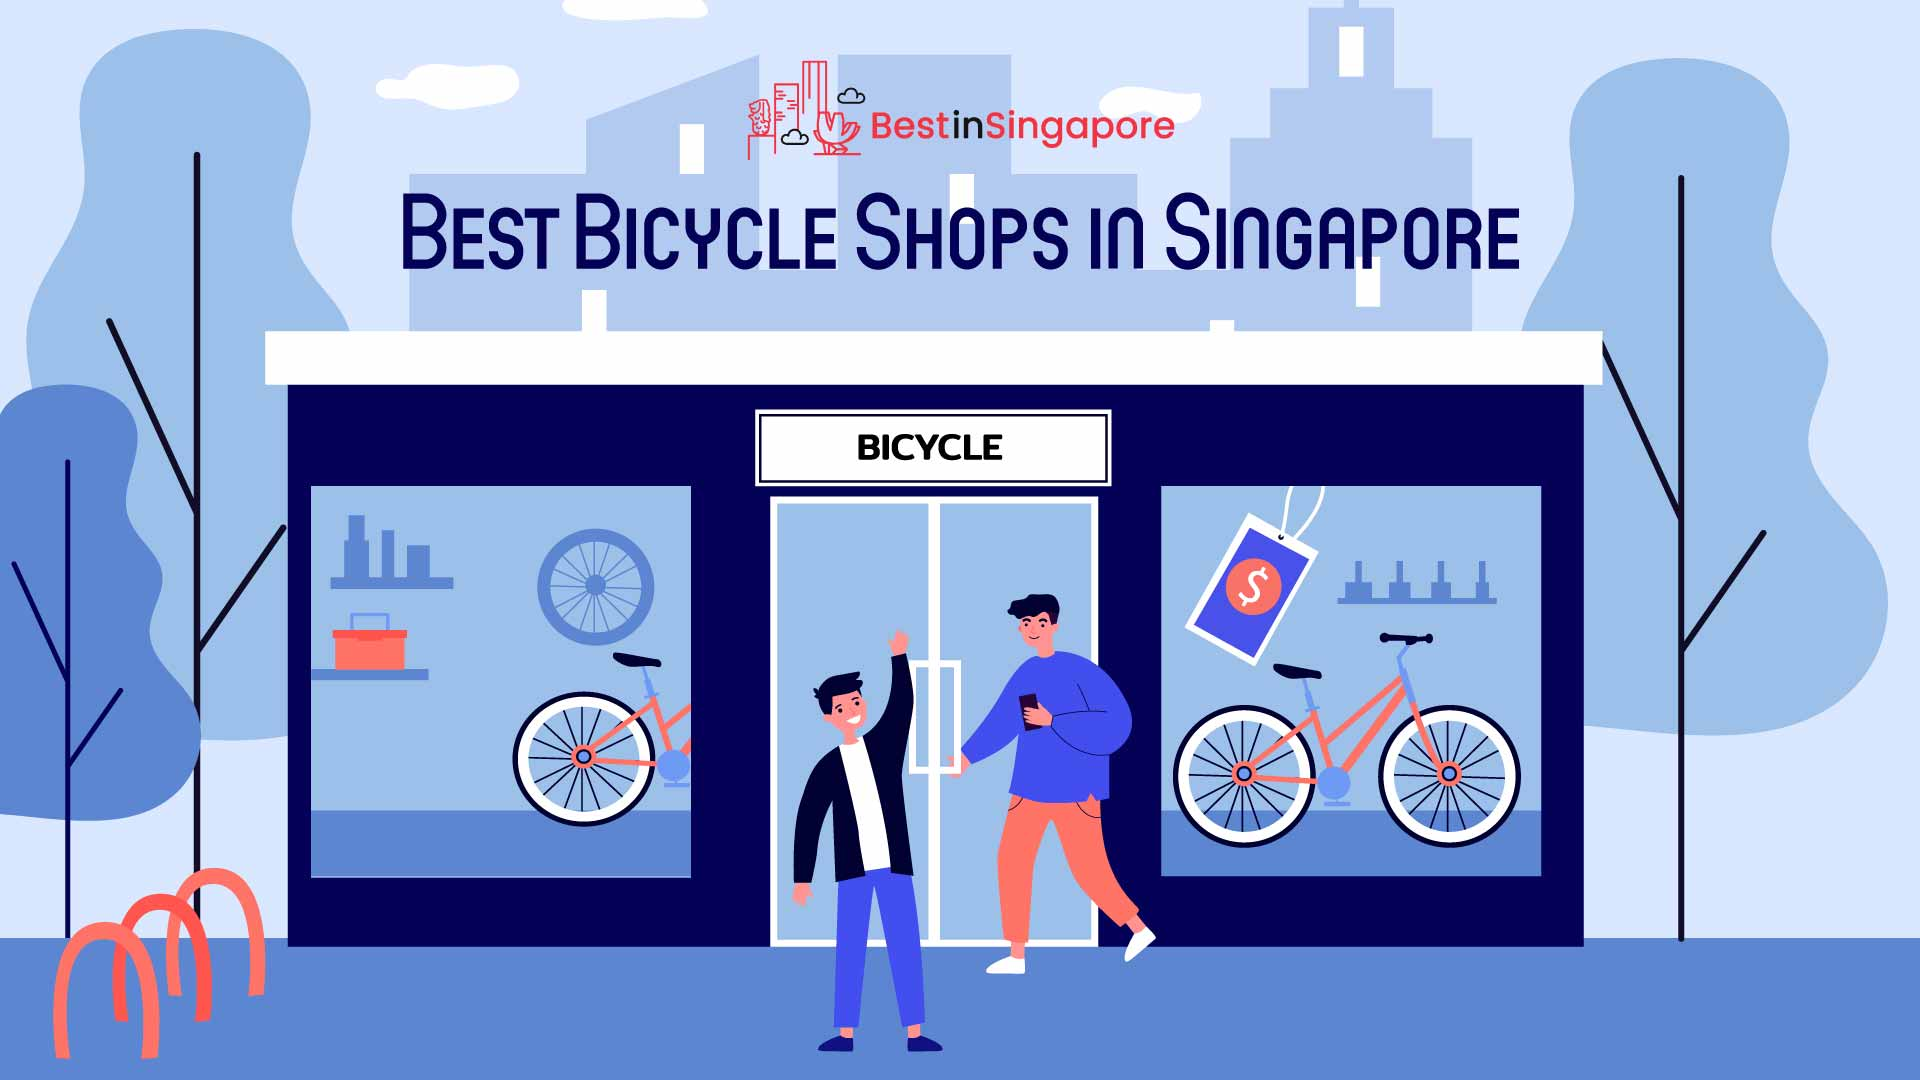 Best Bicycle Shops in Singapore